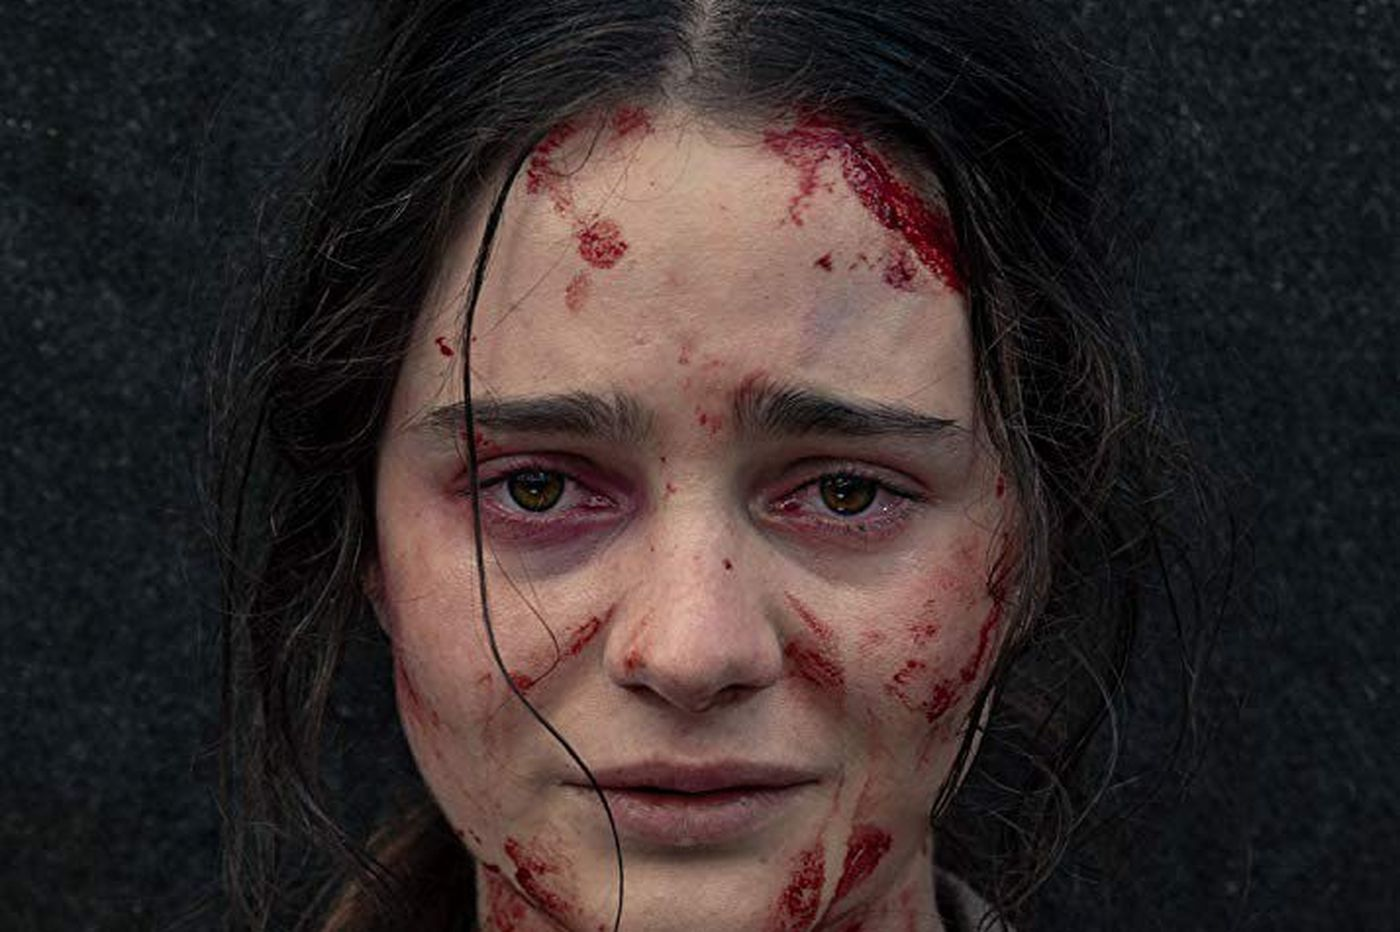 'Babadook' director Jennifer Kent returns with grisly frontier drama 'The Nightingale' | Movie review